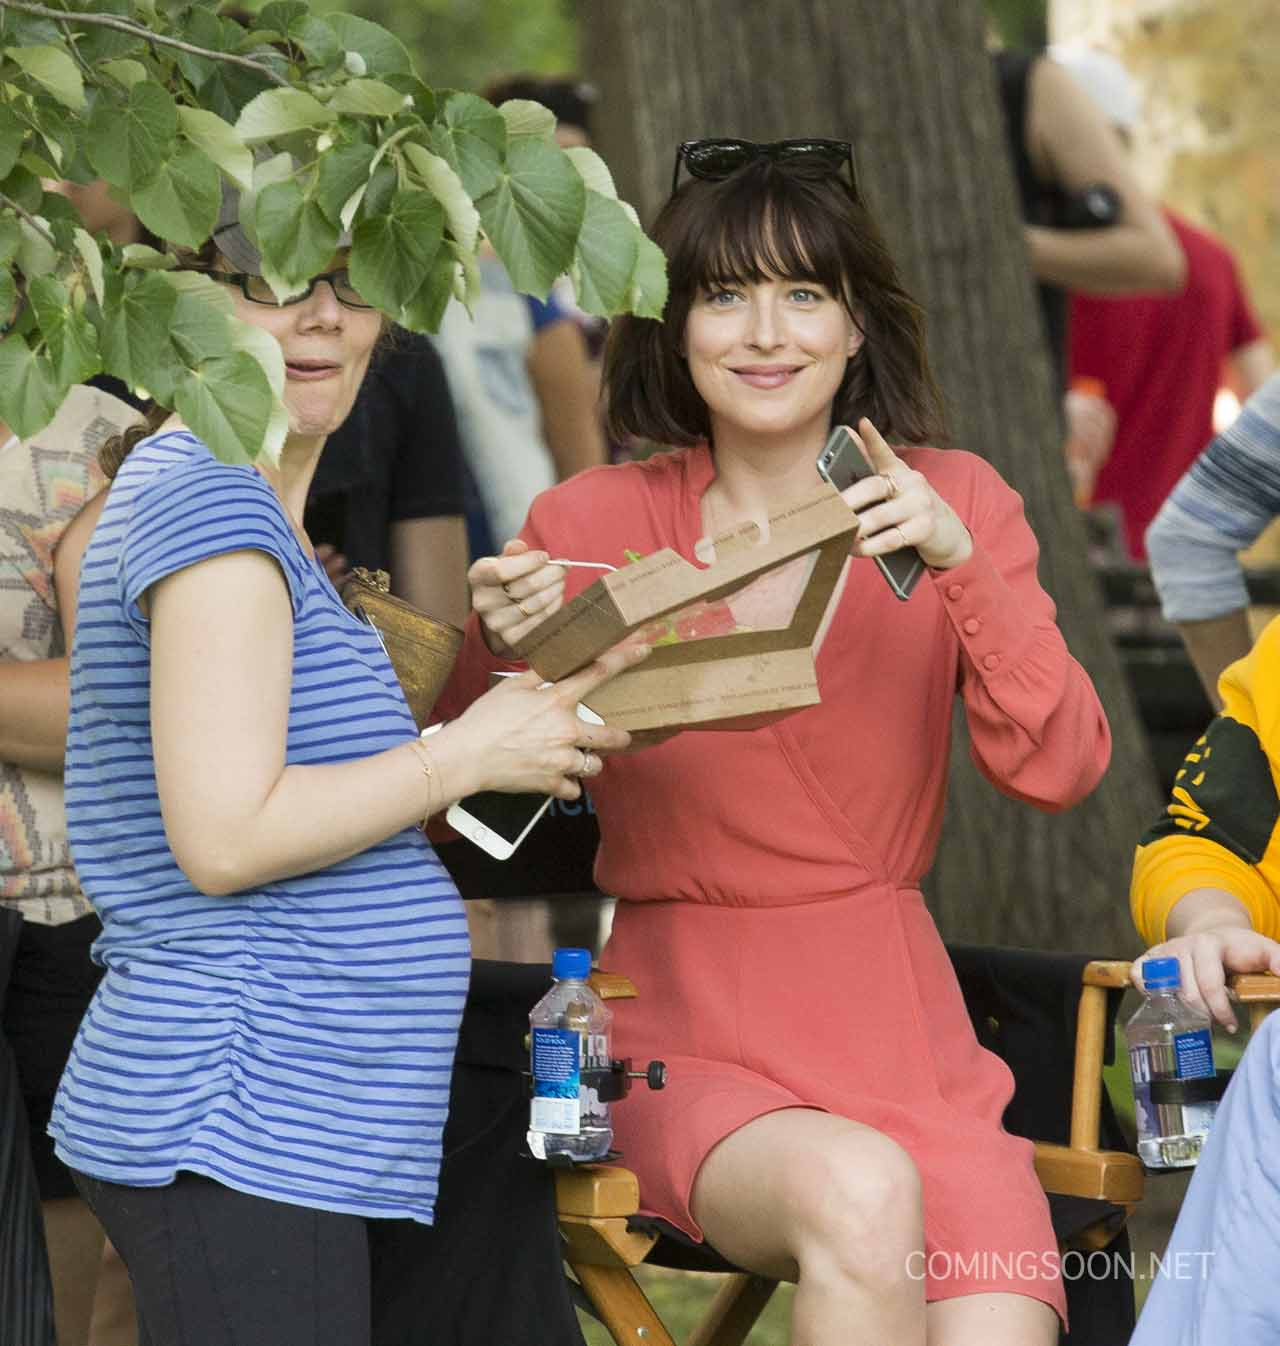 Dakota Johnson And Rebel Wilson In How To Be Single Set Photos